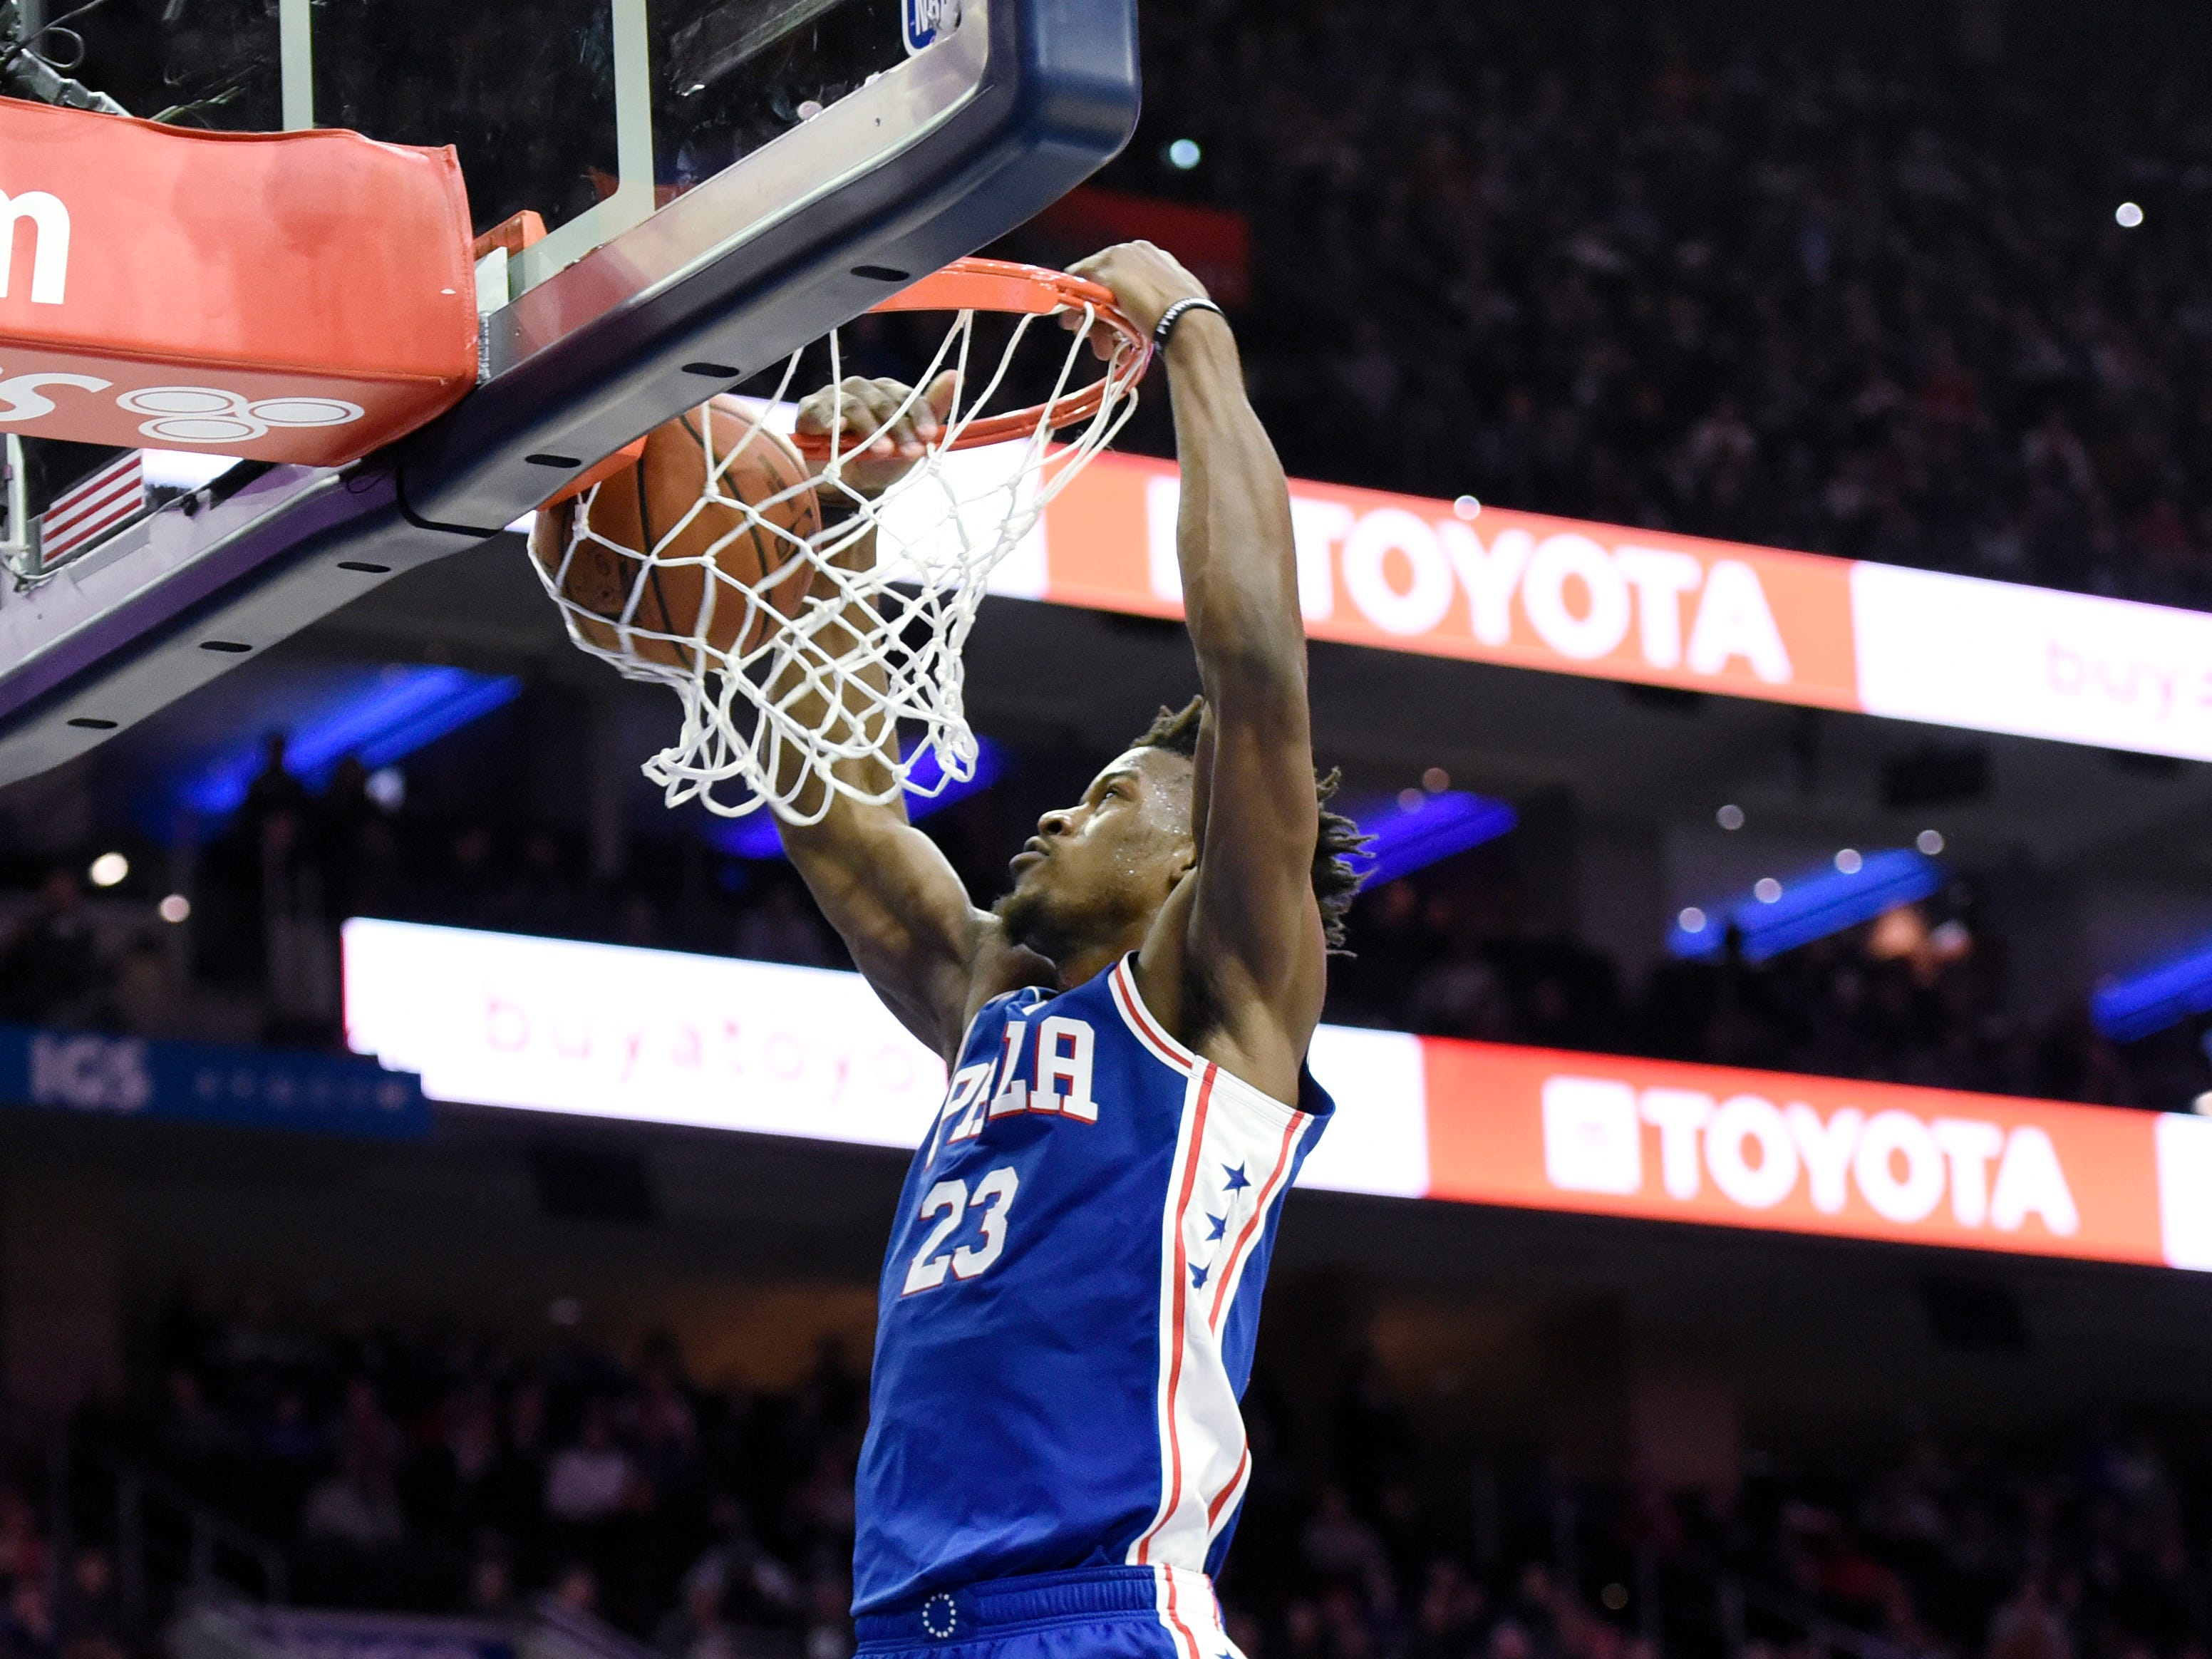 Philadelphia 76ers' Jimmy Butler (23) dunks the ball as Phoenix Suns' Trevor Ariza (3) looks on in the second half of an NBA basketball game, Monday, Nov. 19, 2018, in Philadelphia. The 76ers beat the Suns 119-114.